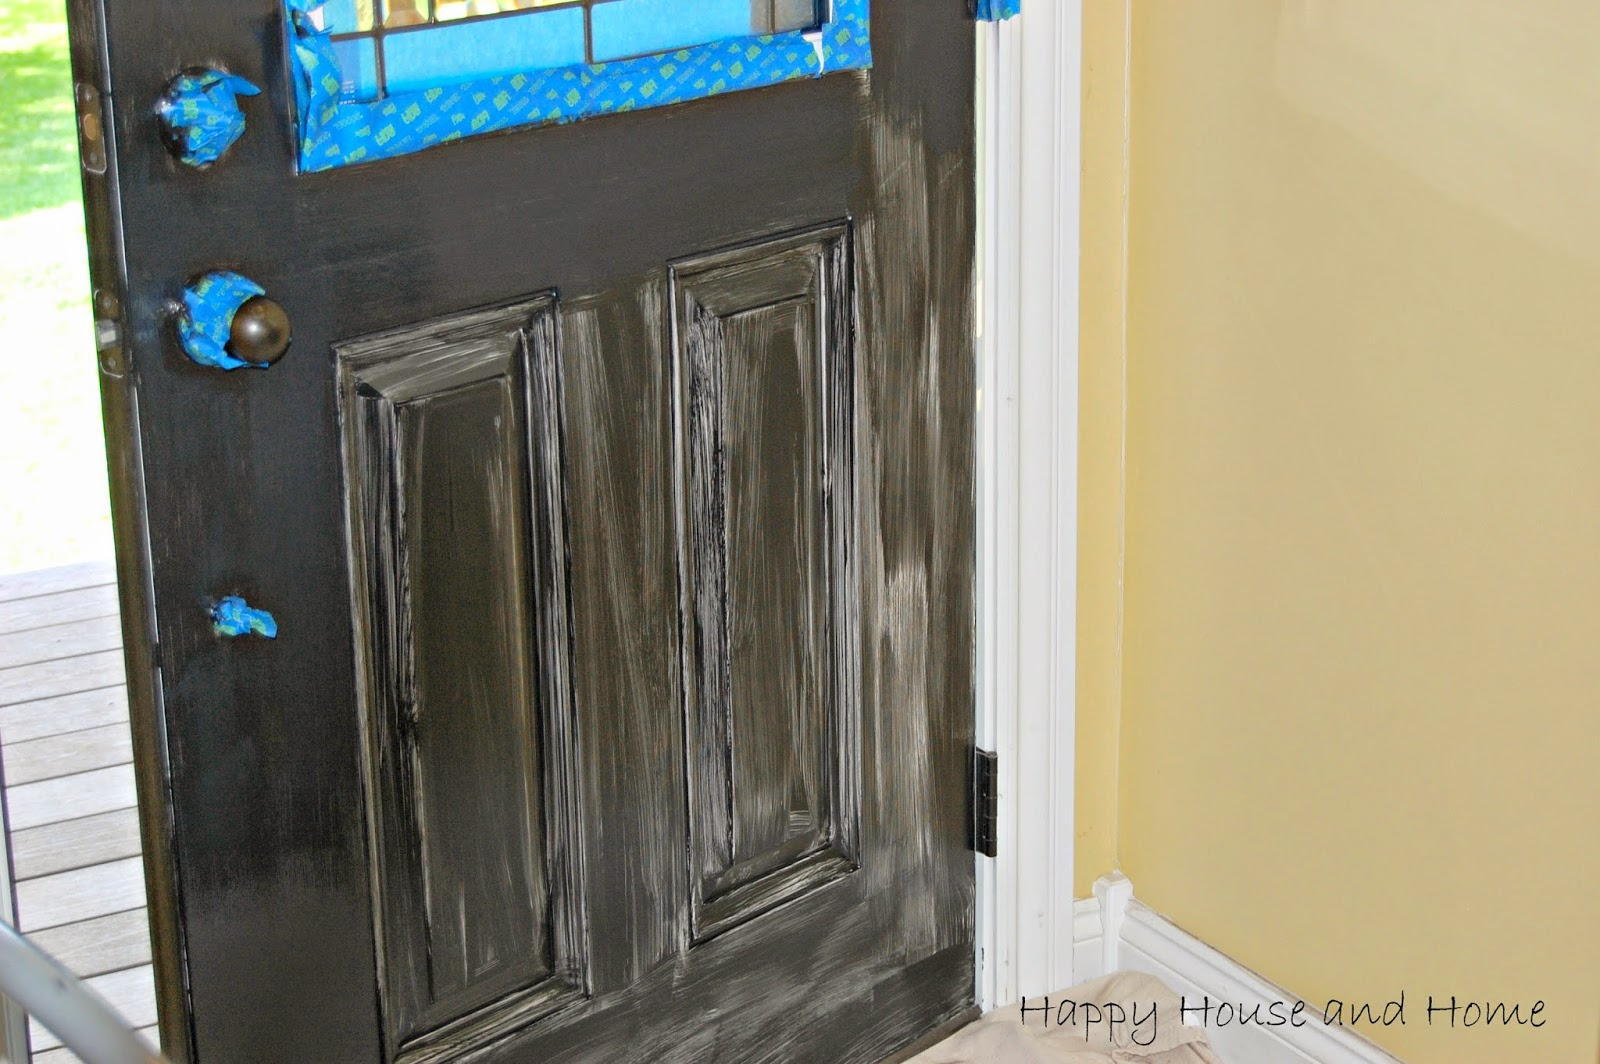 Happy House and Home: Painting the Front Door